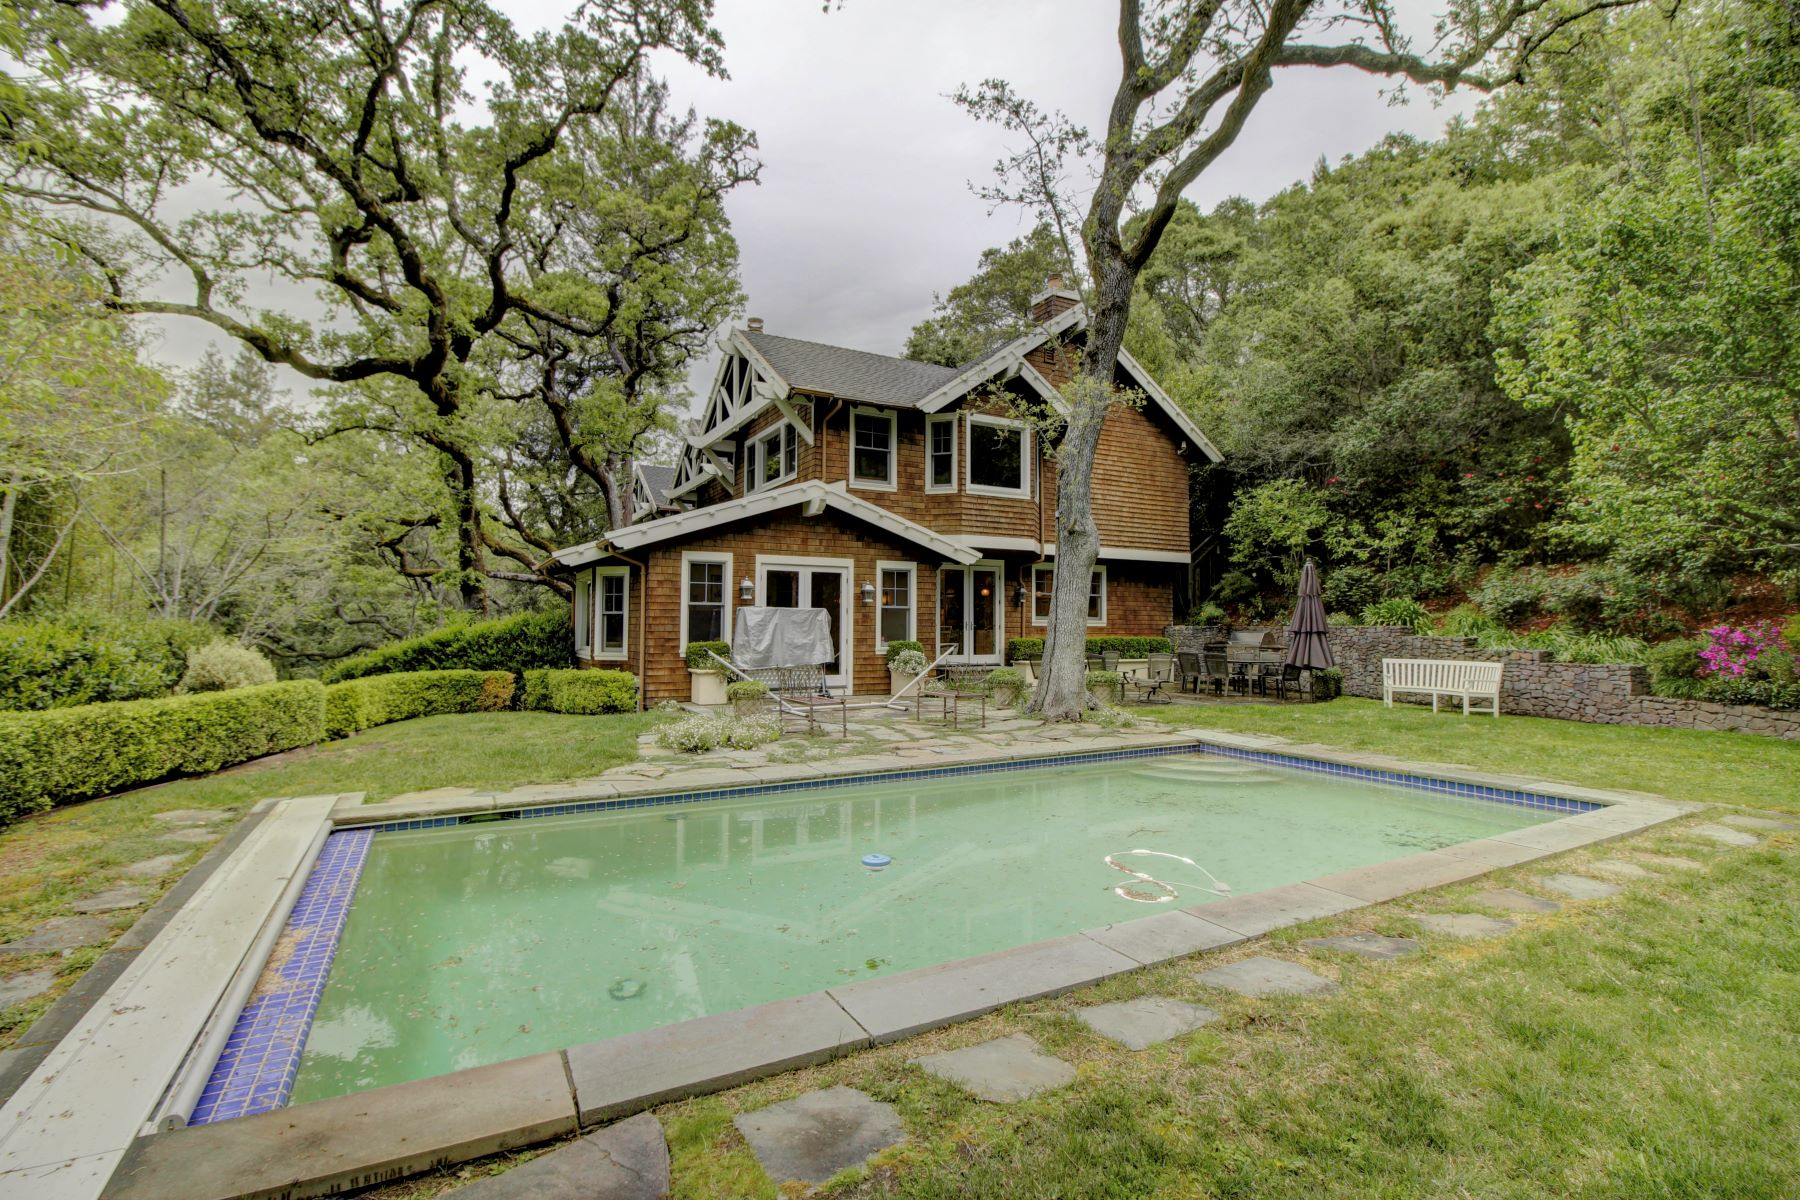 Single Family Home for Sale at Jim Kelly Built Craftsman in the Flats of Kent Woodlands 45 Evergreen Drive Kentfield, California, 94904 United States